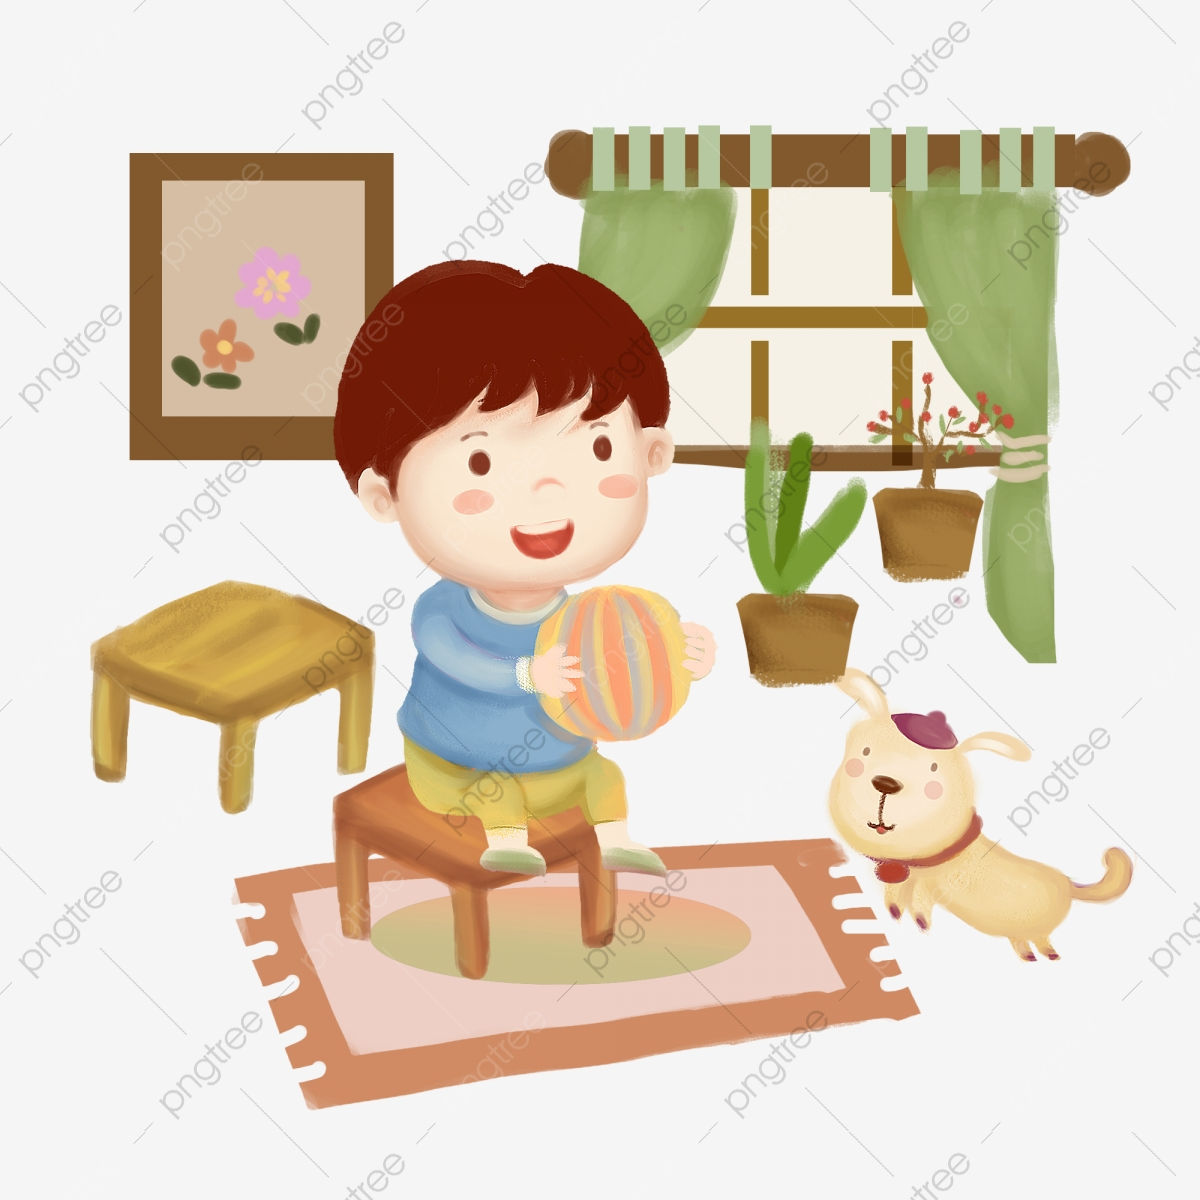 Boy Playing with Dog Clip Art